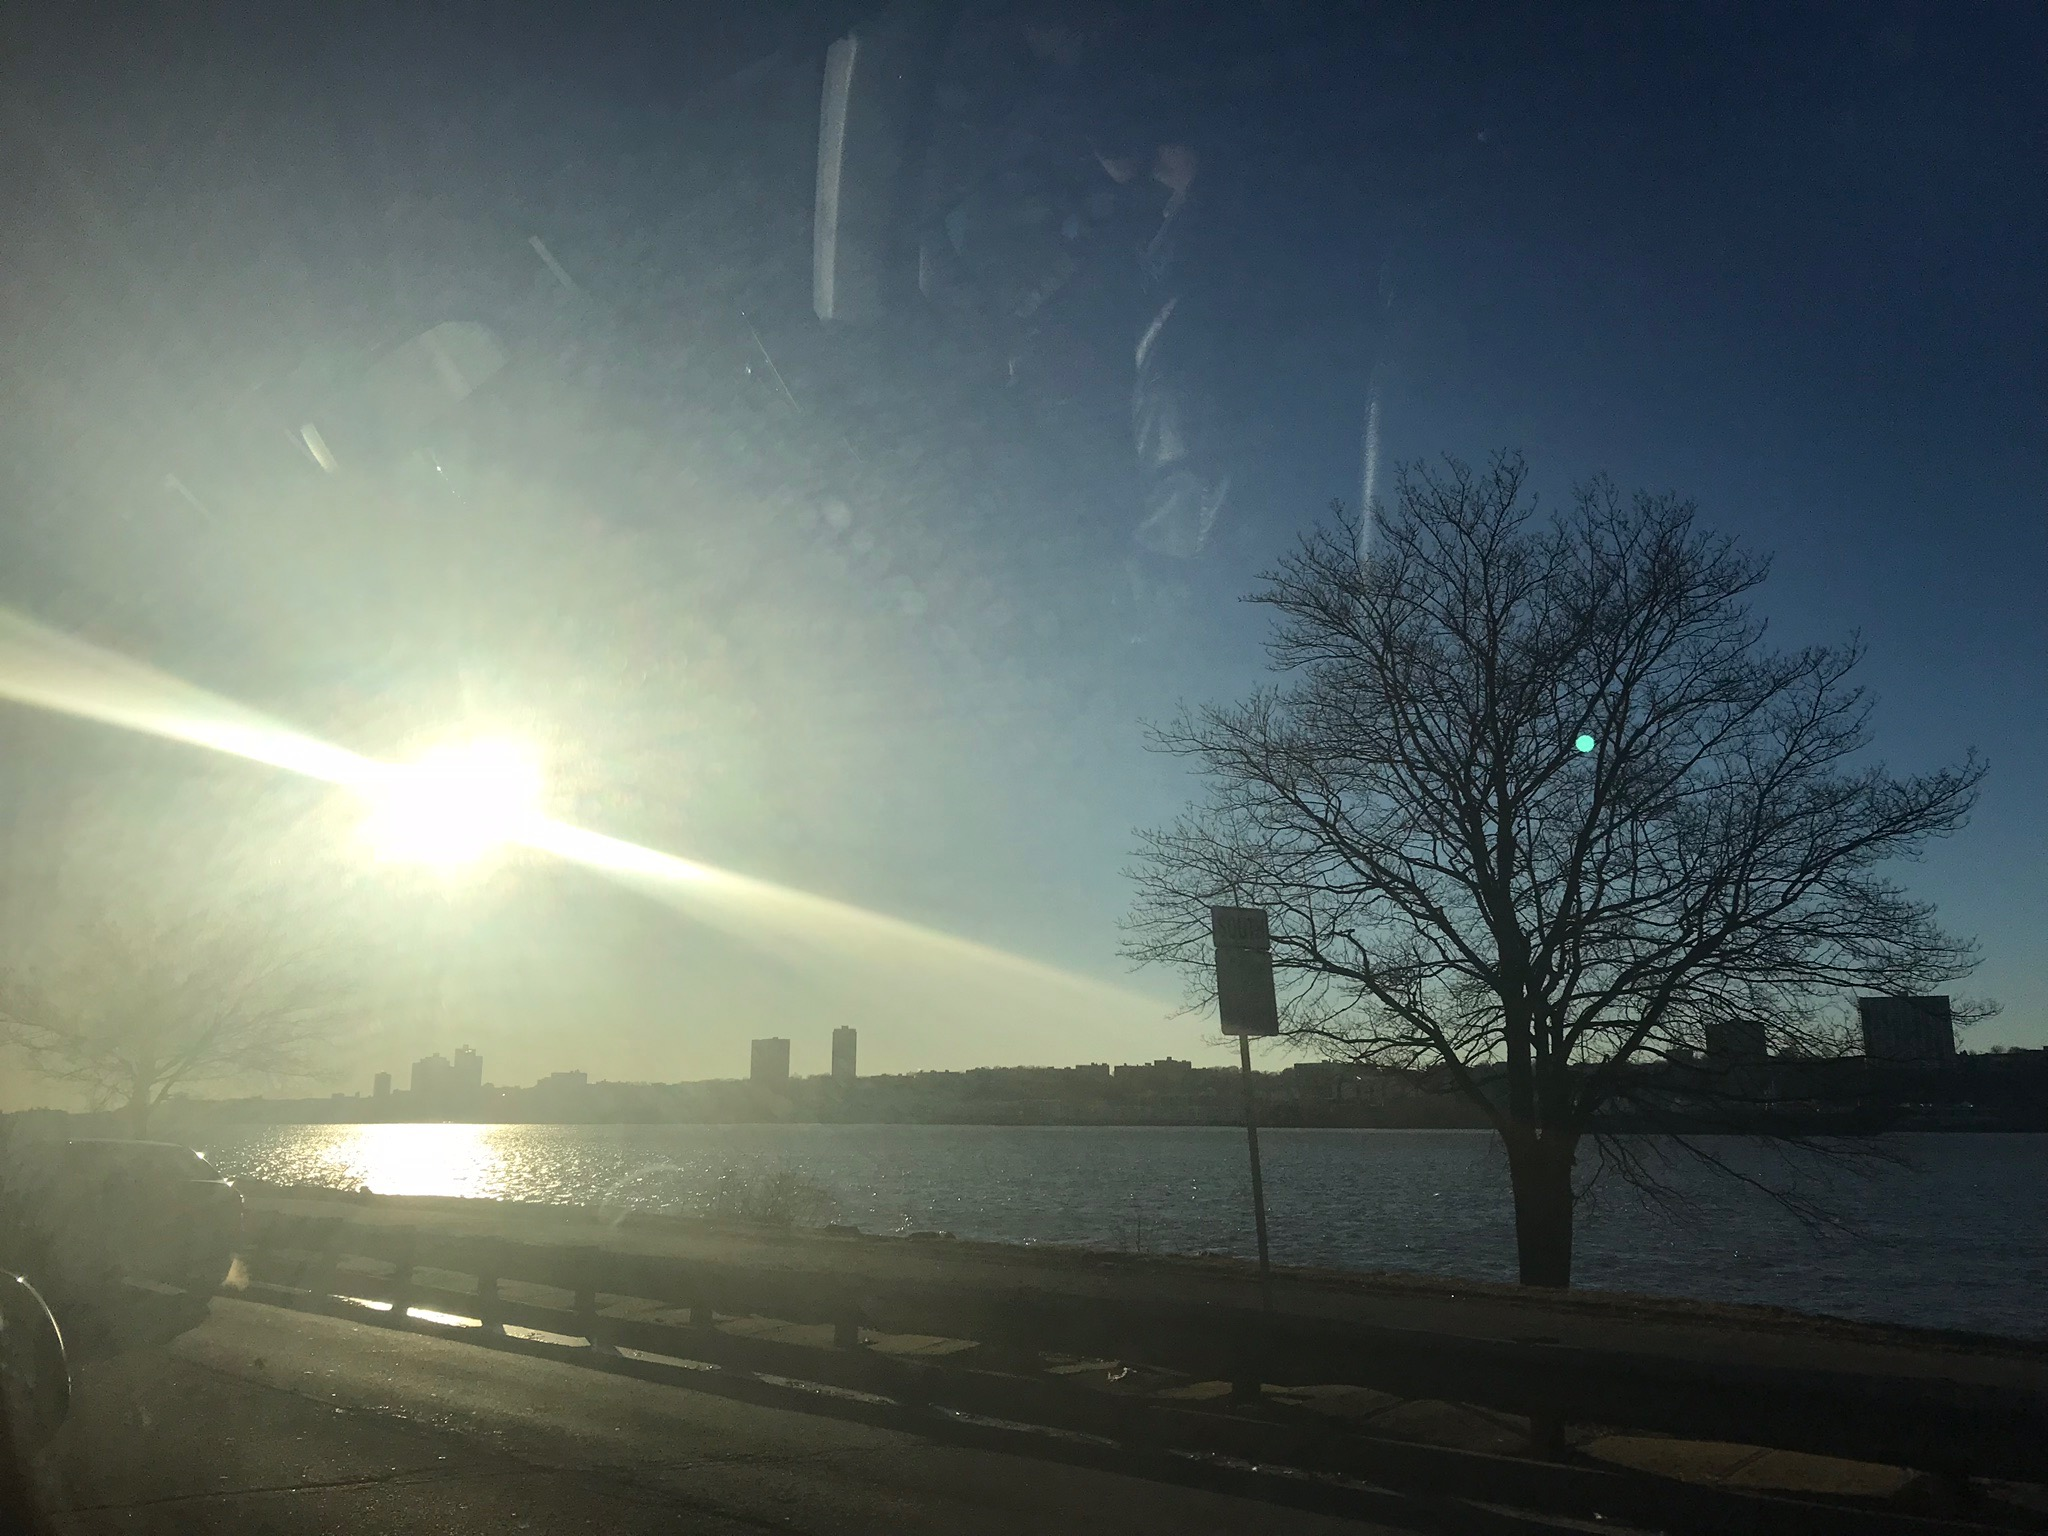 The sun came out! It melted the ice and burned off the fog! It's a new day!